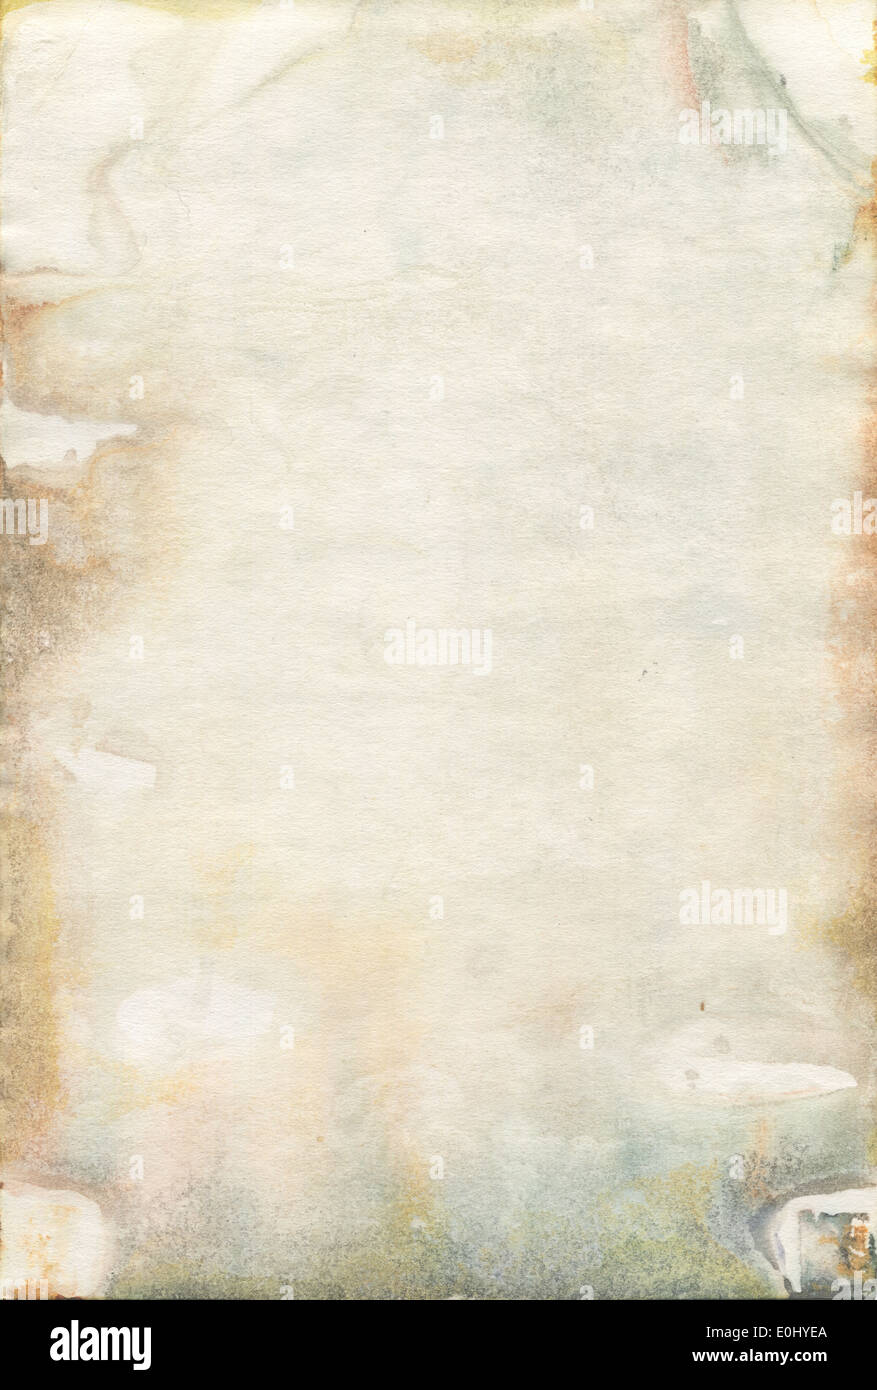 Moldy old watercolour paper texture - Stock Image